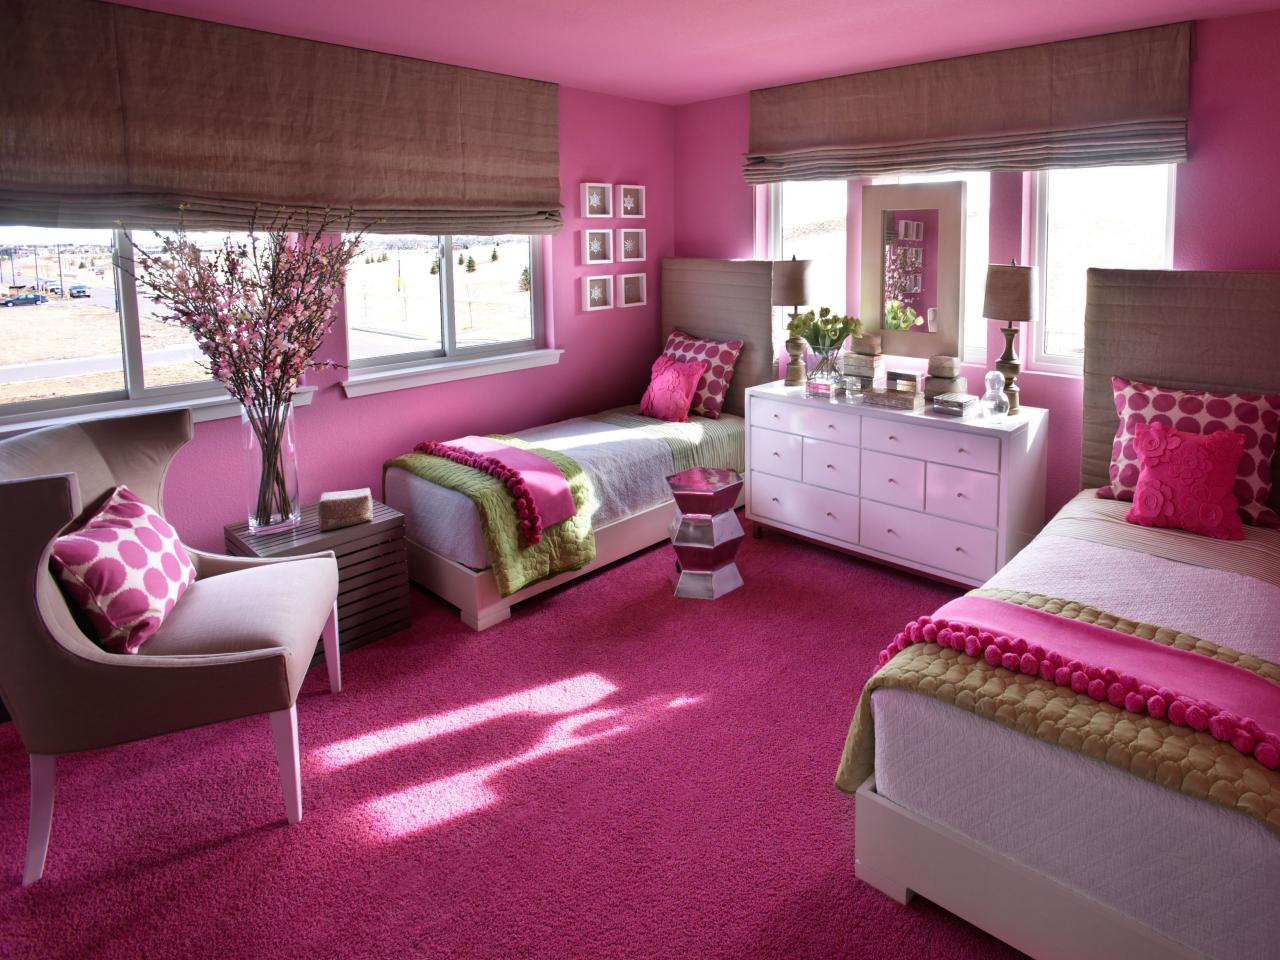 Nice room colors for girls - Tags